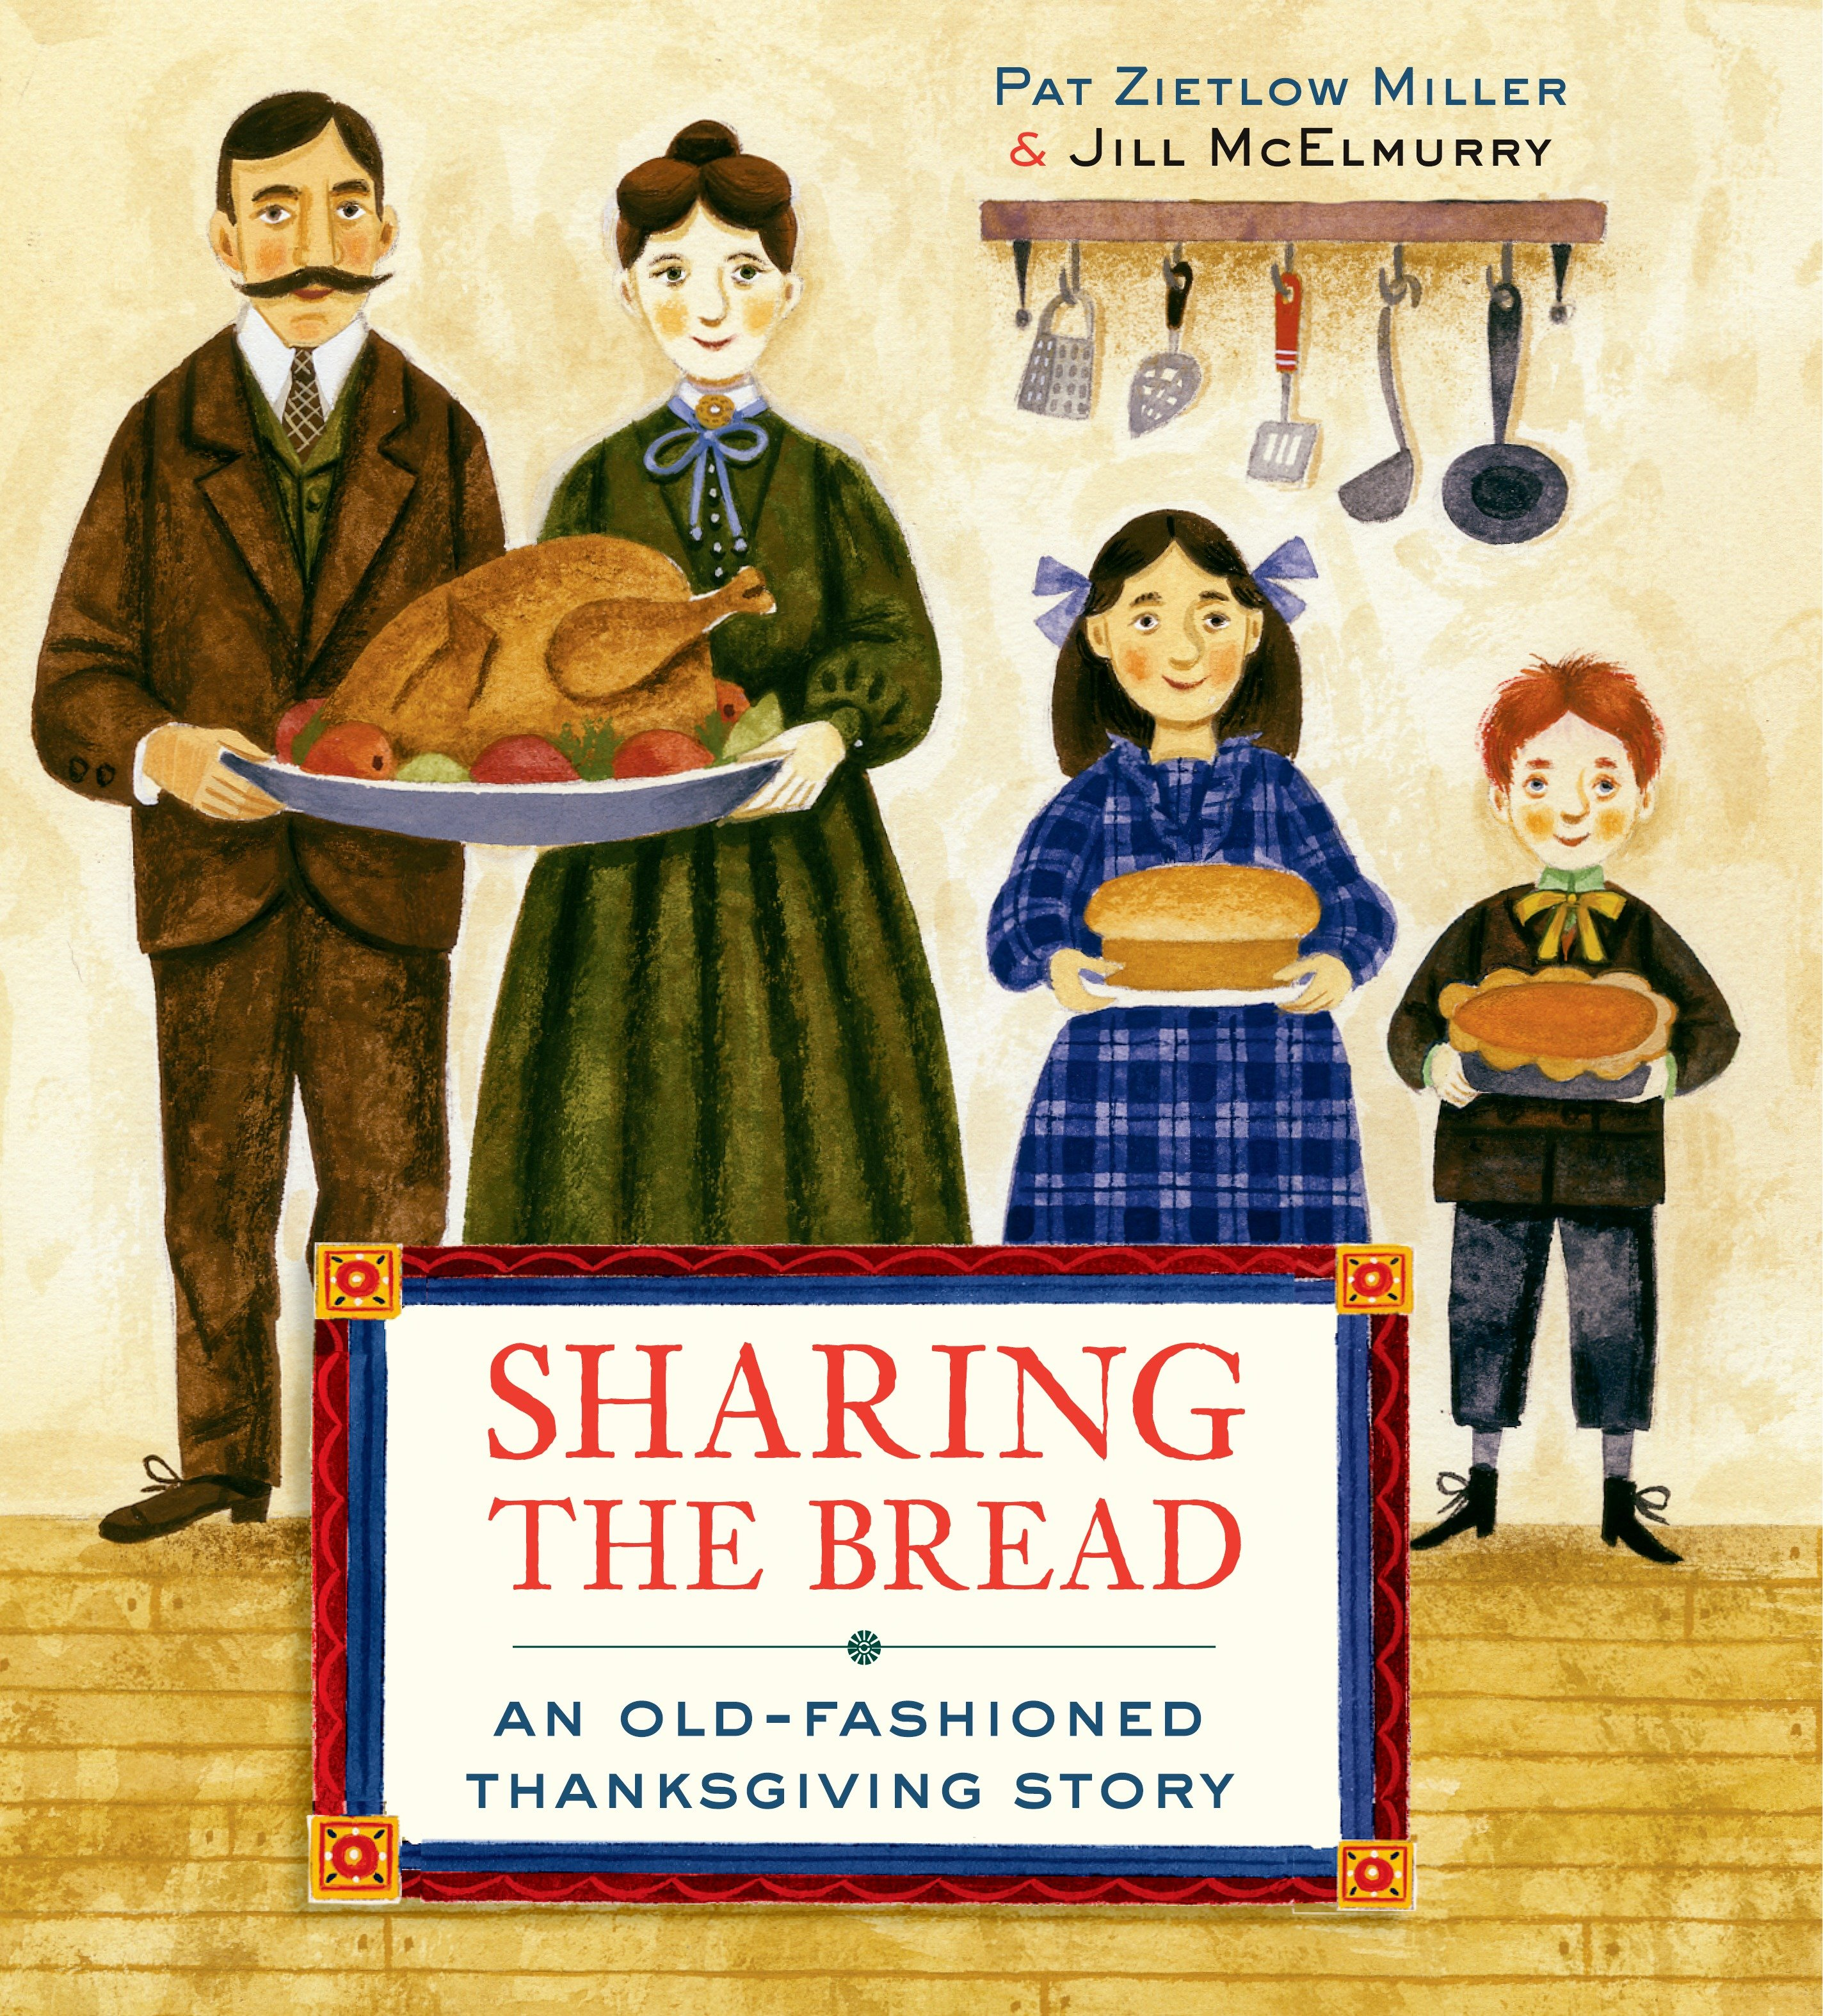 Sharing the bread an old-fashioned Thanksgiving story cover image